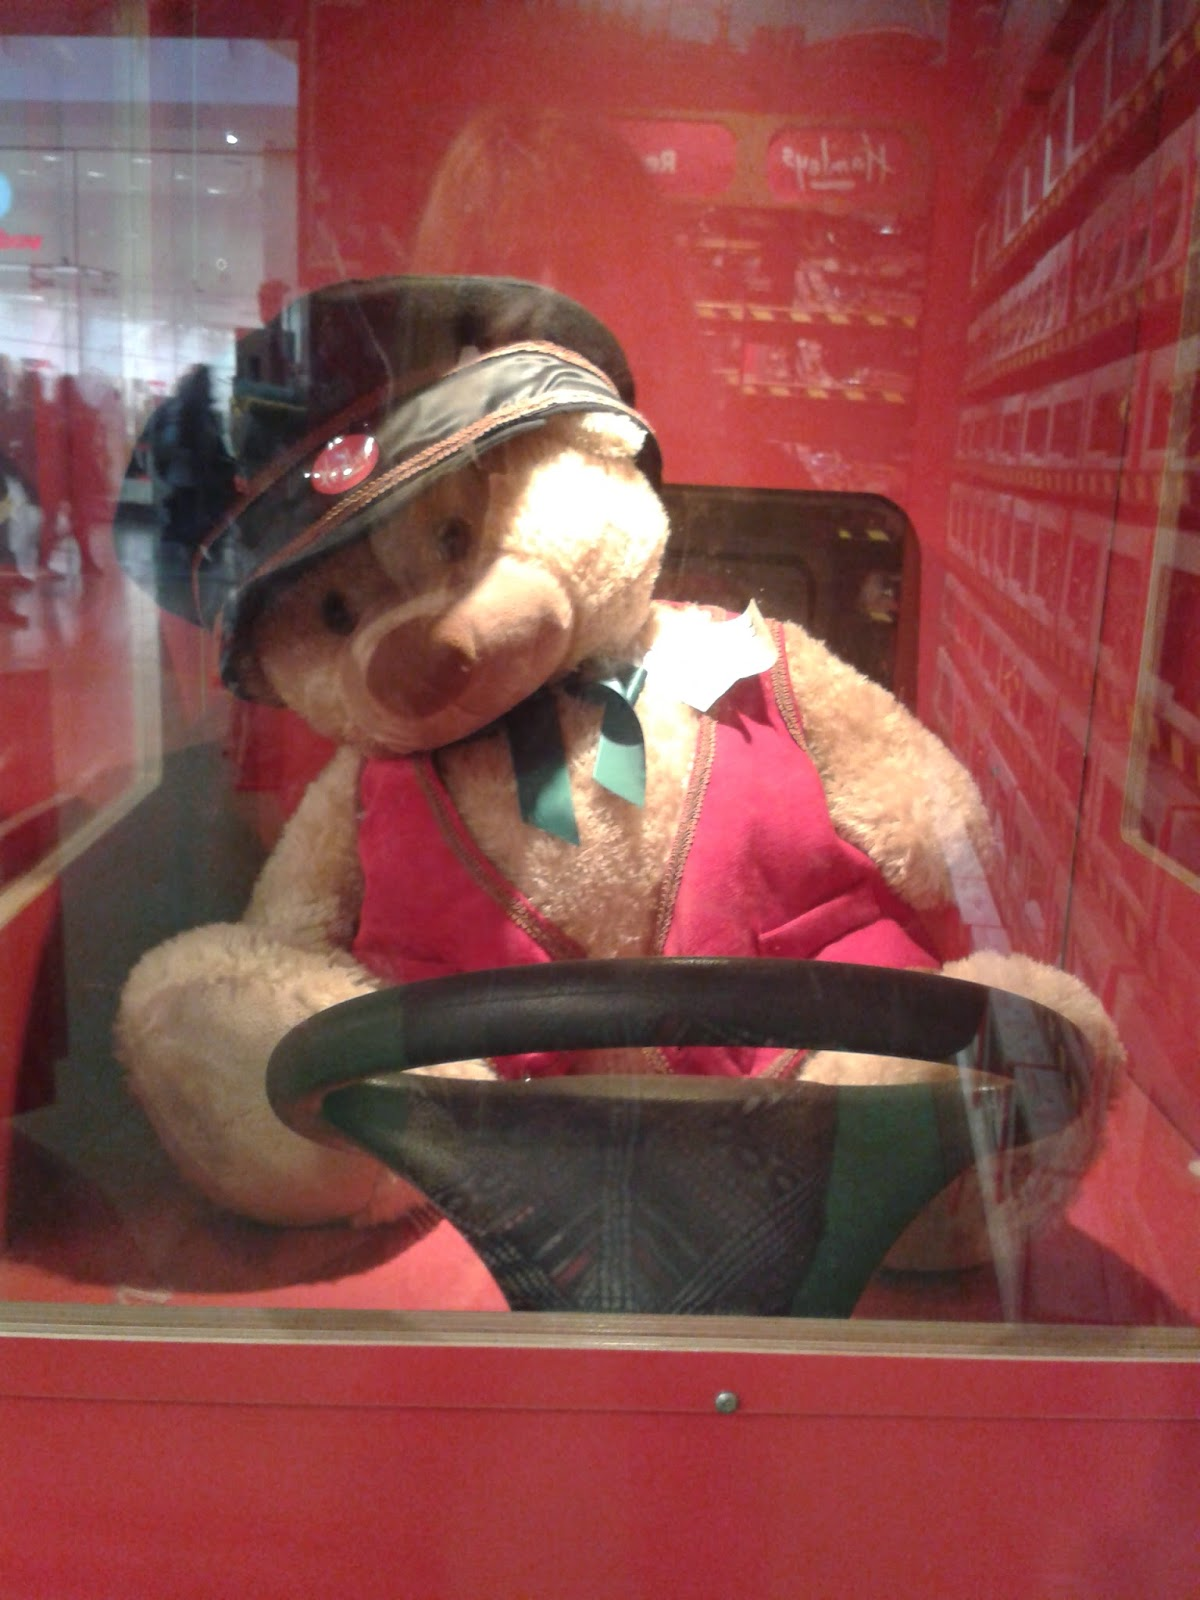 A bus driving teddy bear in Hamleys Toystore, Cardiff